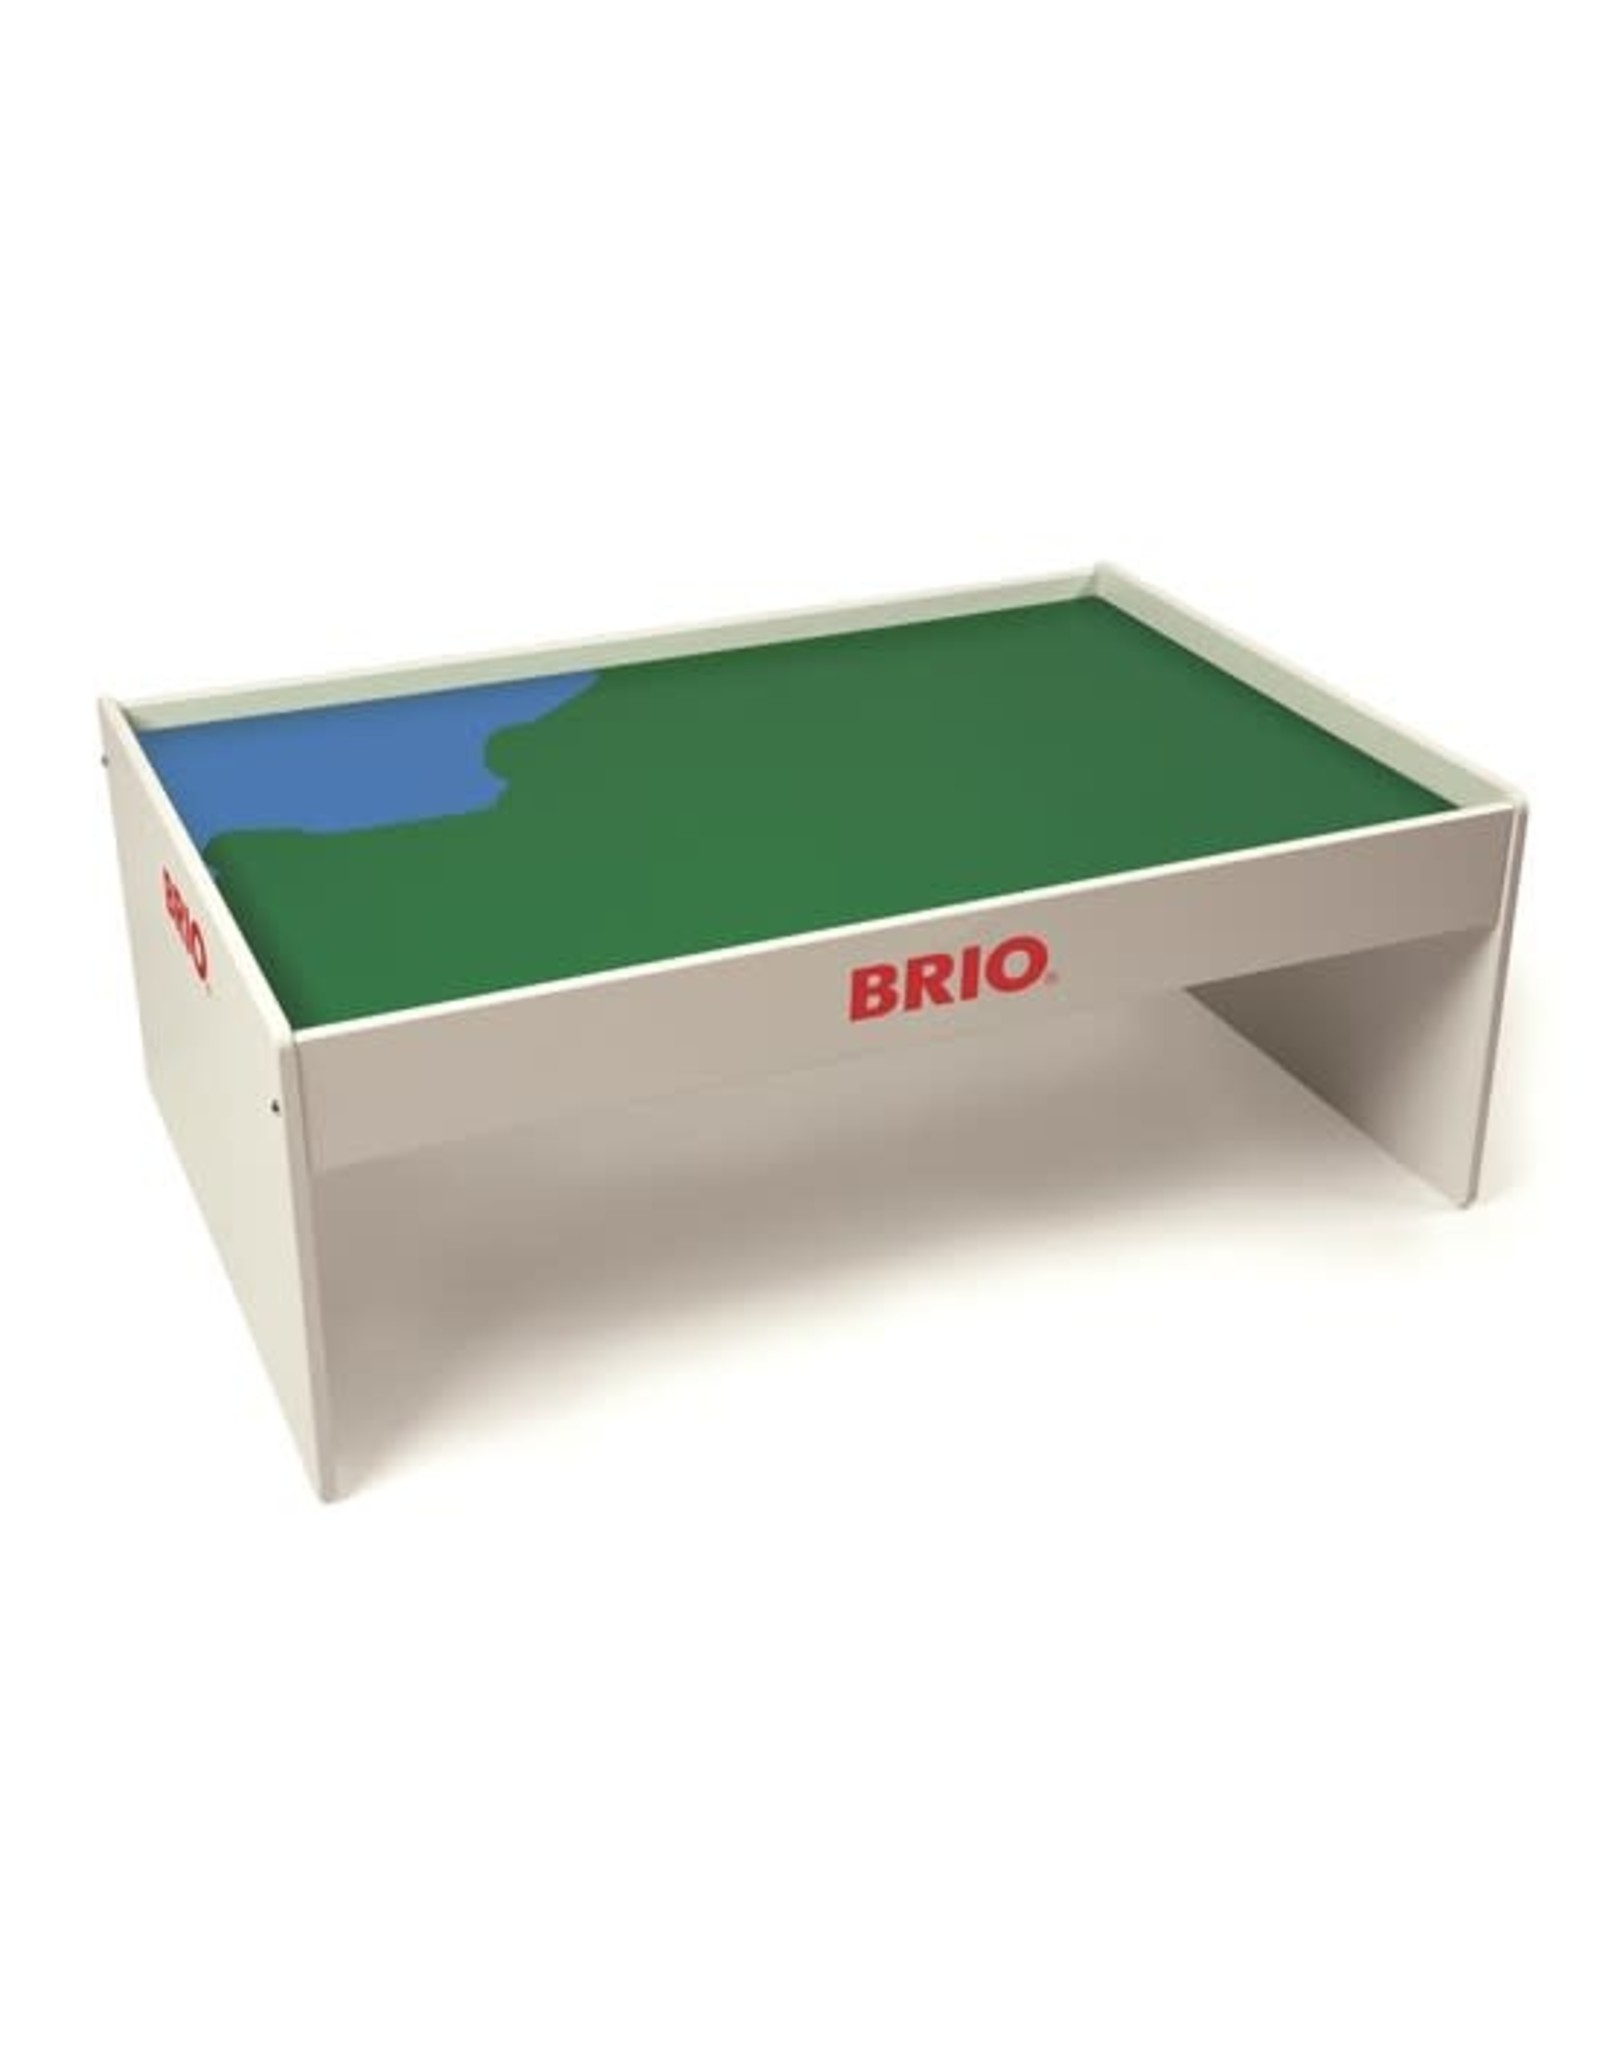 Brio Brio Consumer Play Table